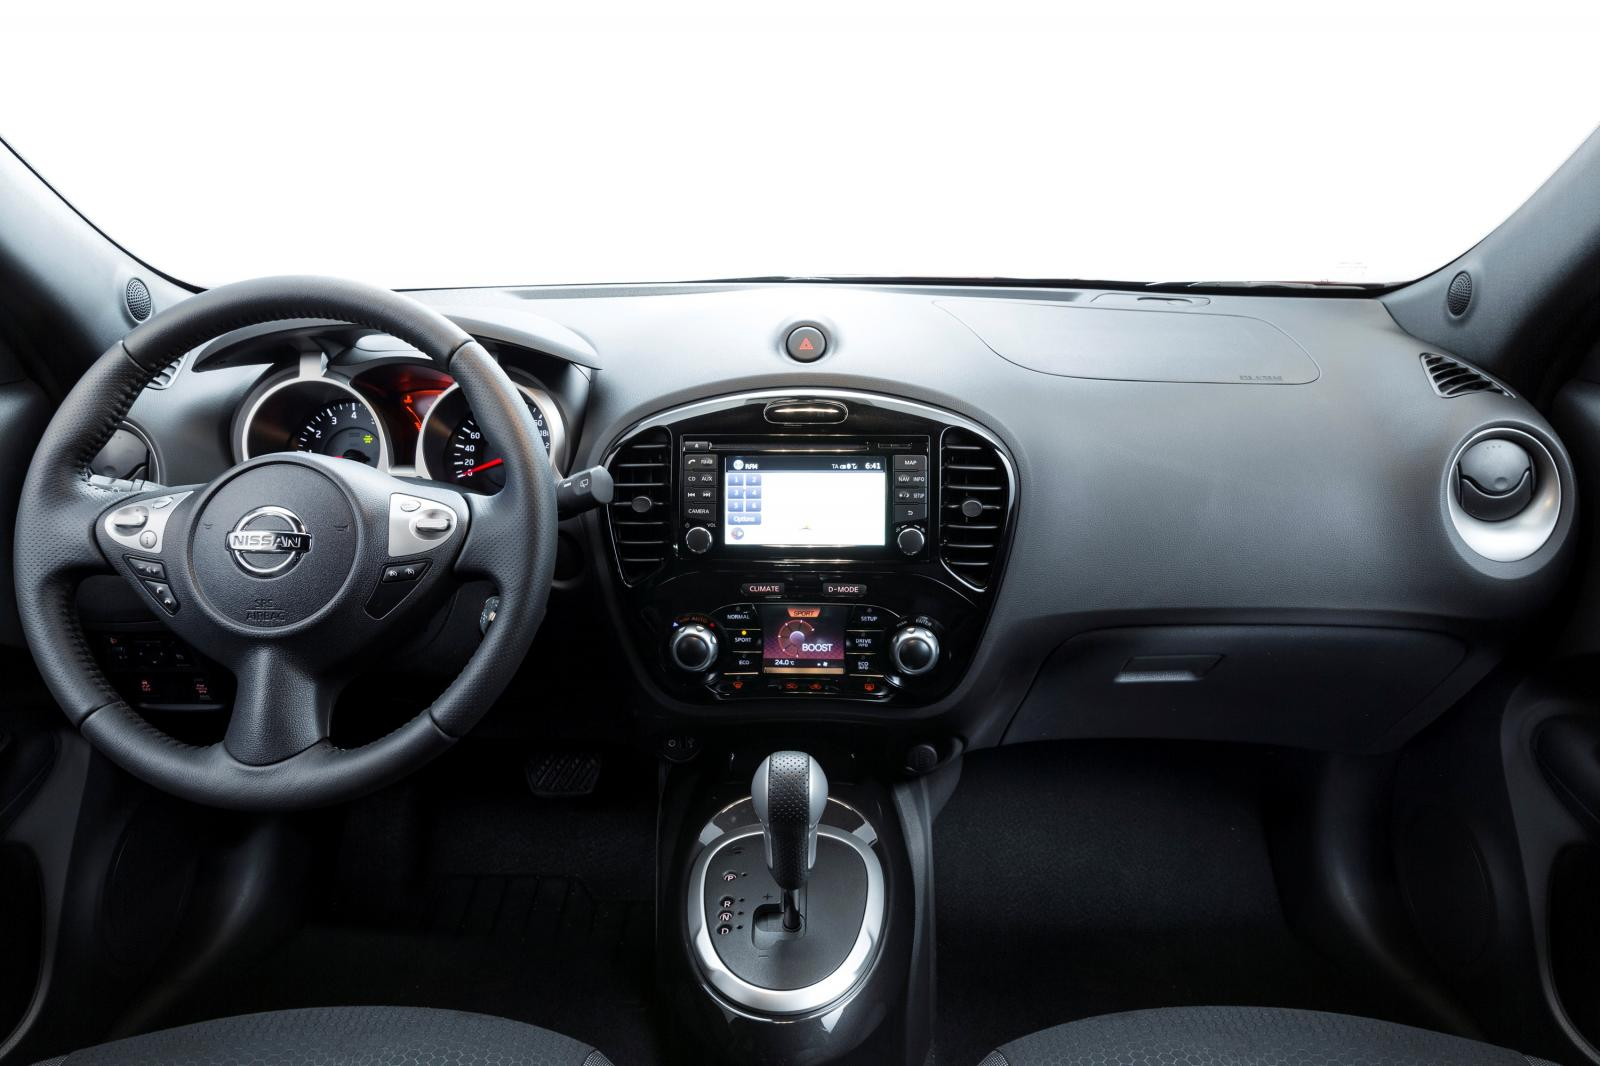 2013 nissan juke nismo interior gallery hd cars wallpaper 2013 nissan juke n tec special edition 2013 nissan juke n tec special edition vanachro gallery vanachro Images